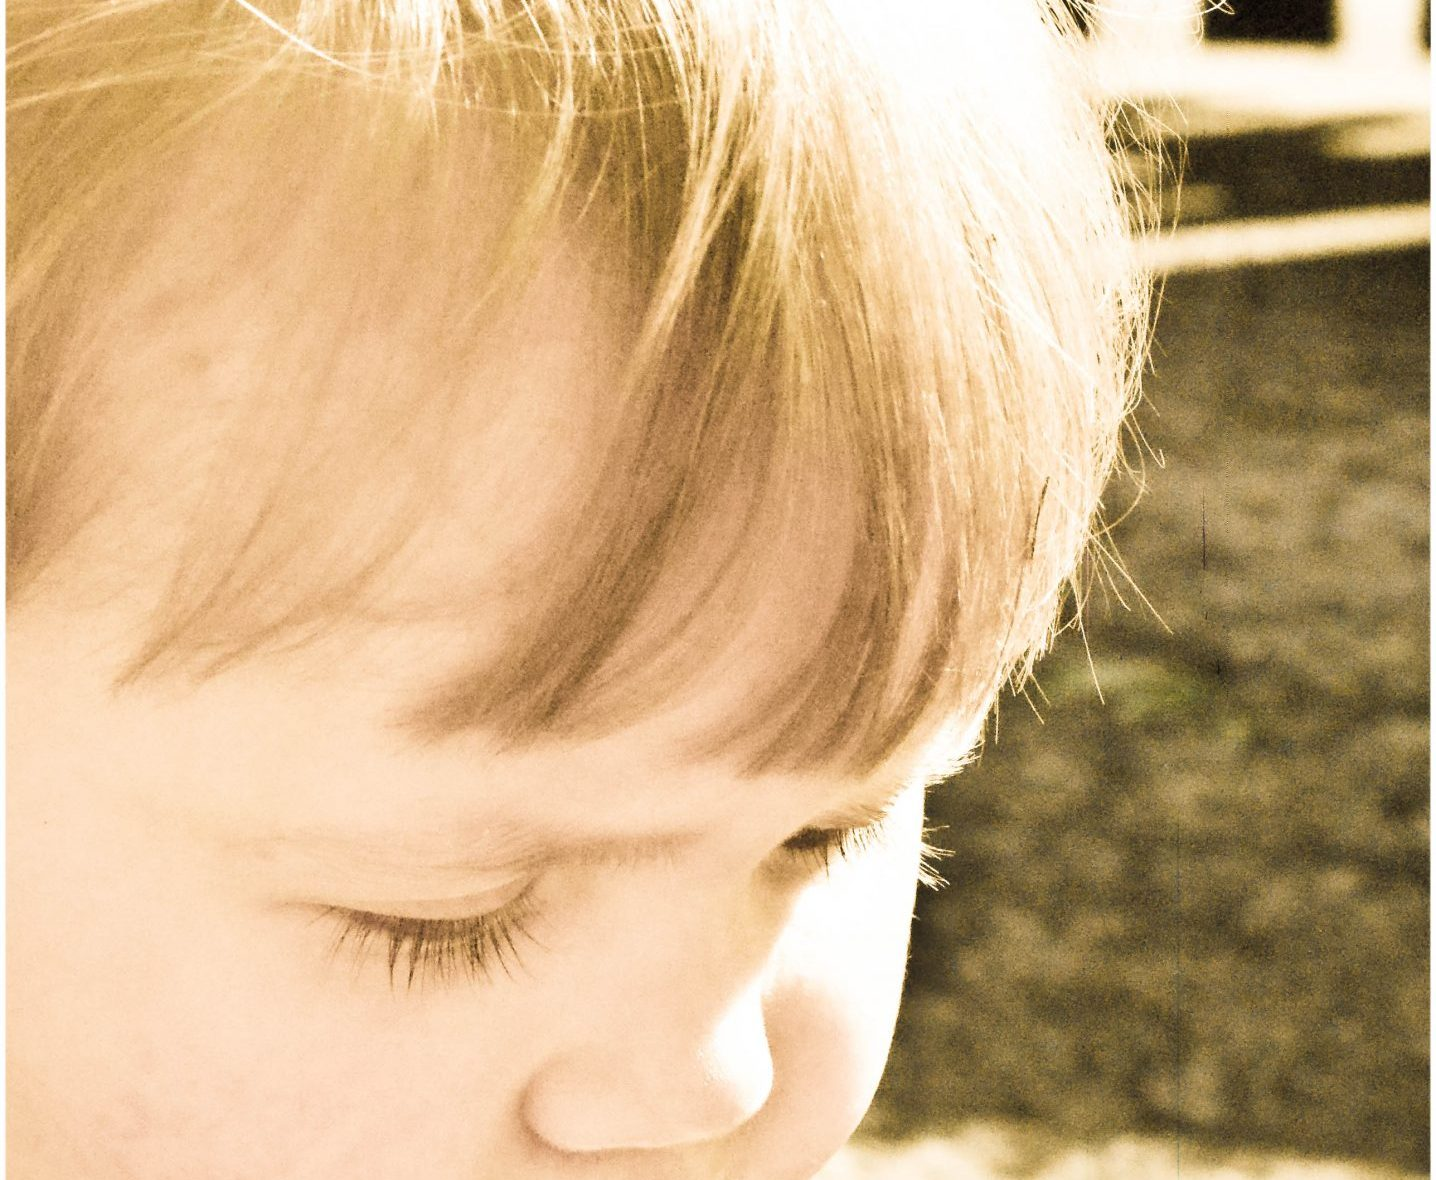 Isabelle, Not Always Right, Toddler, Toddler Close up, Toddler Profile, Toddler with a dirty face